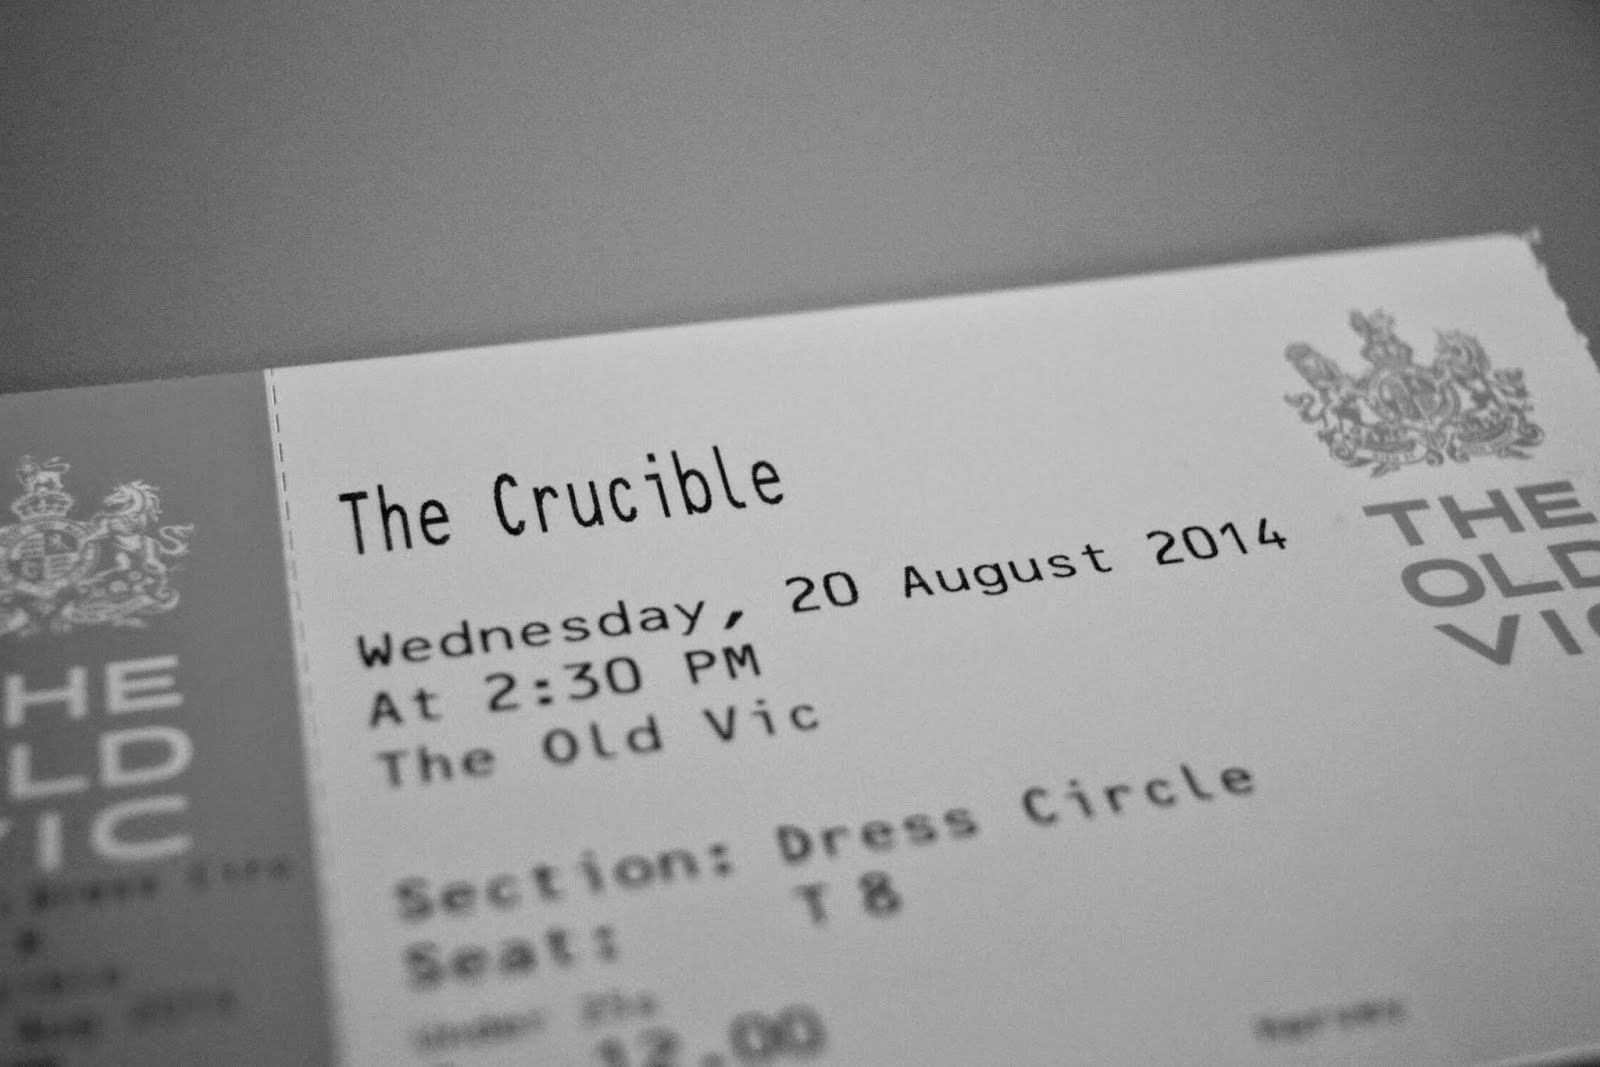 ticket for the crucible at the old vic